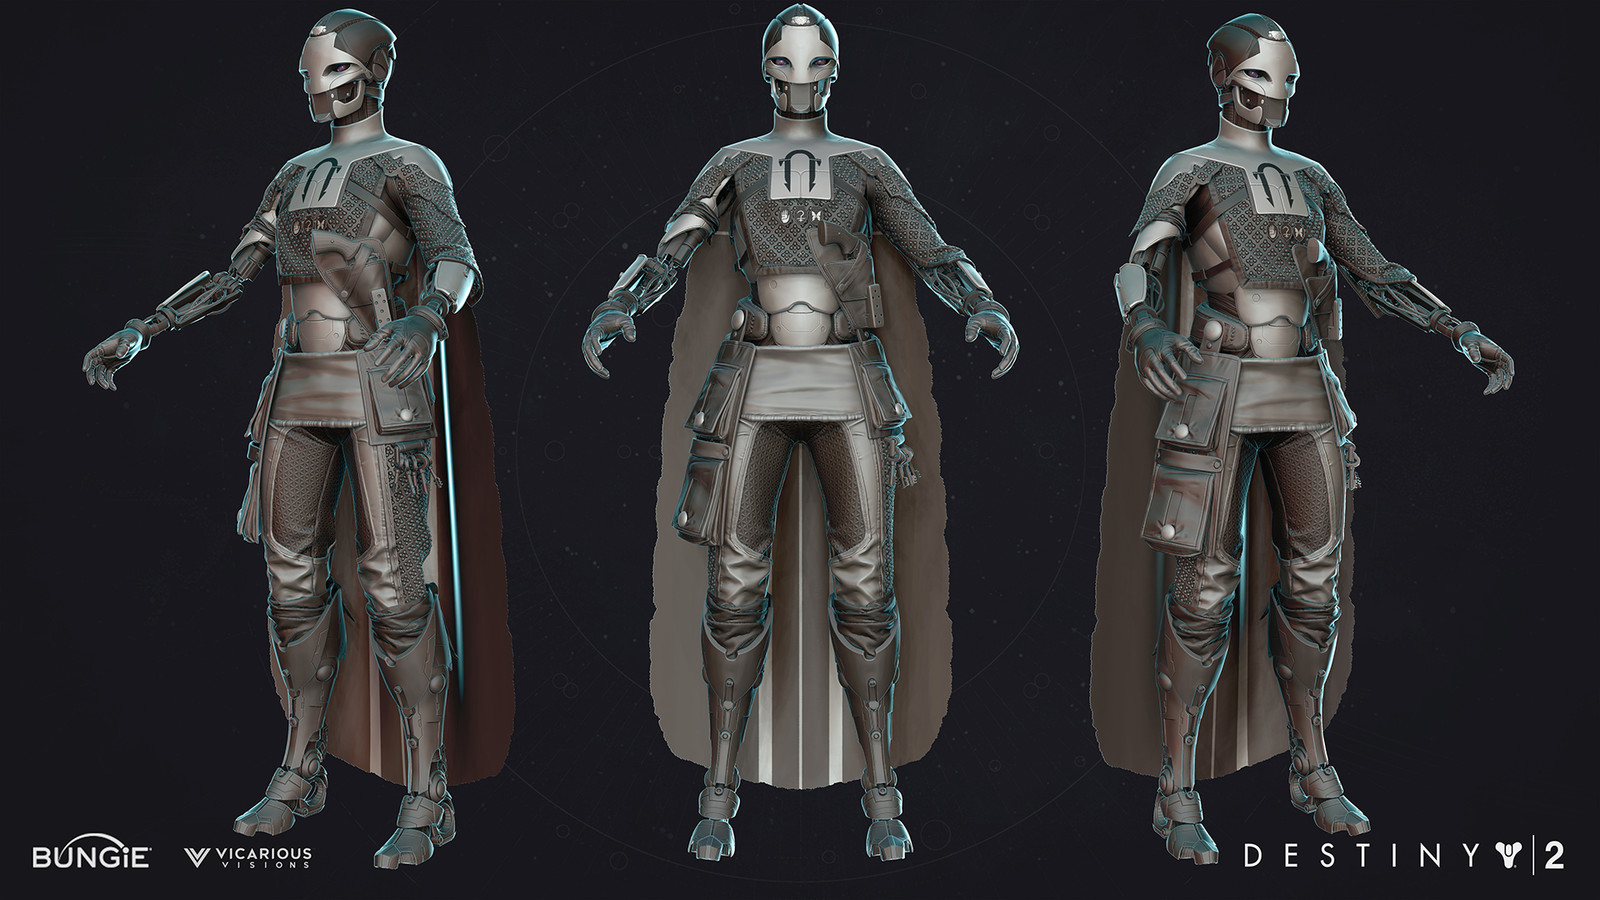 3D Sculpt rendered in zbrush